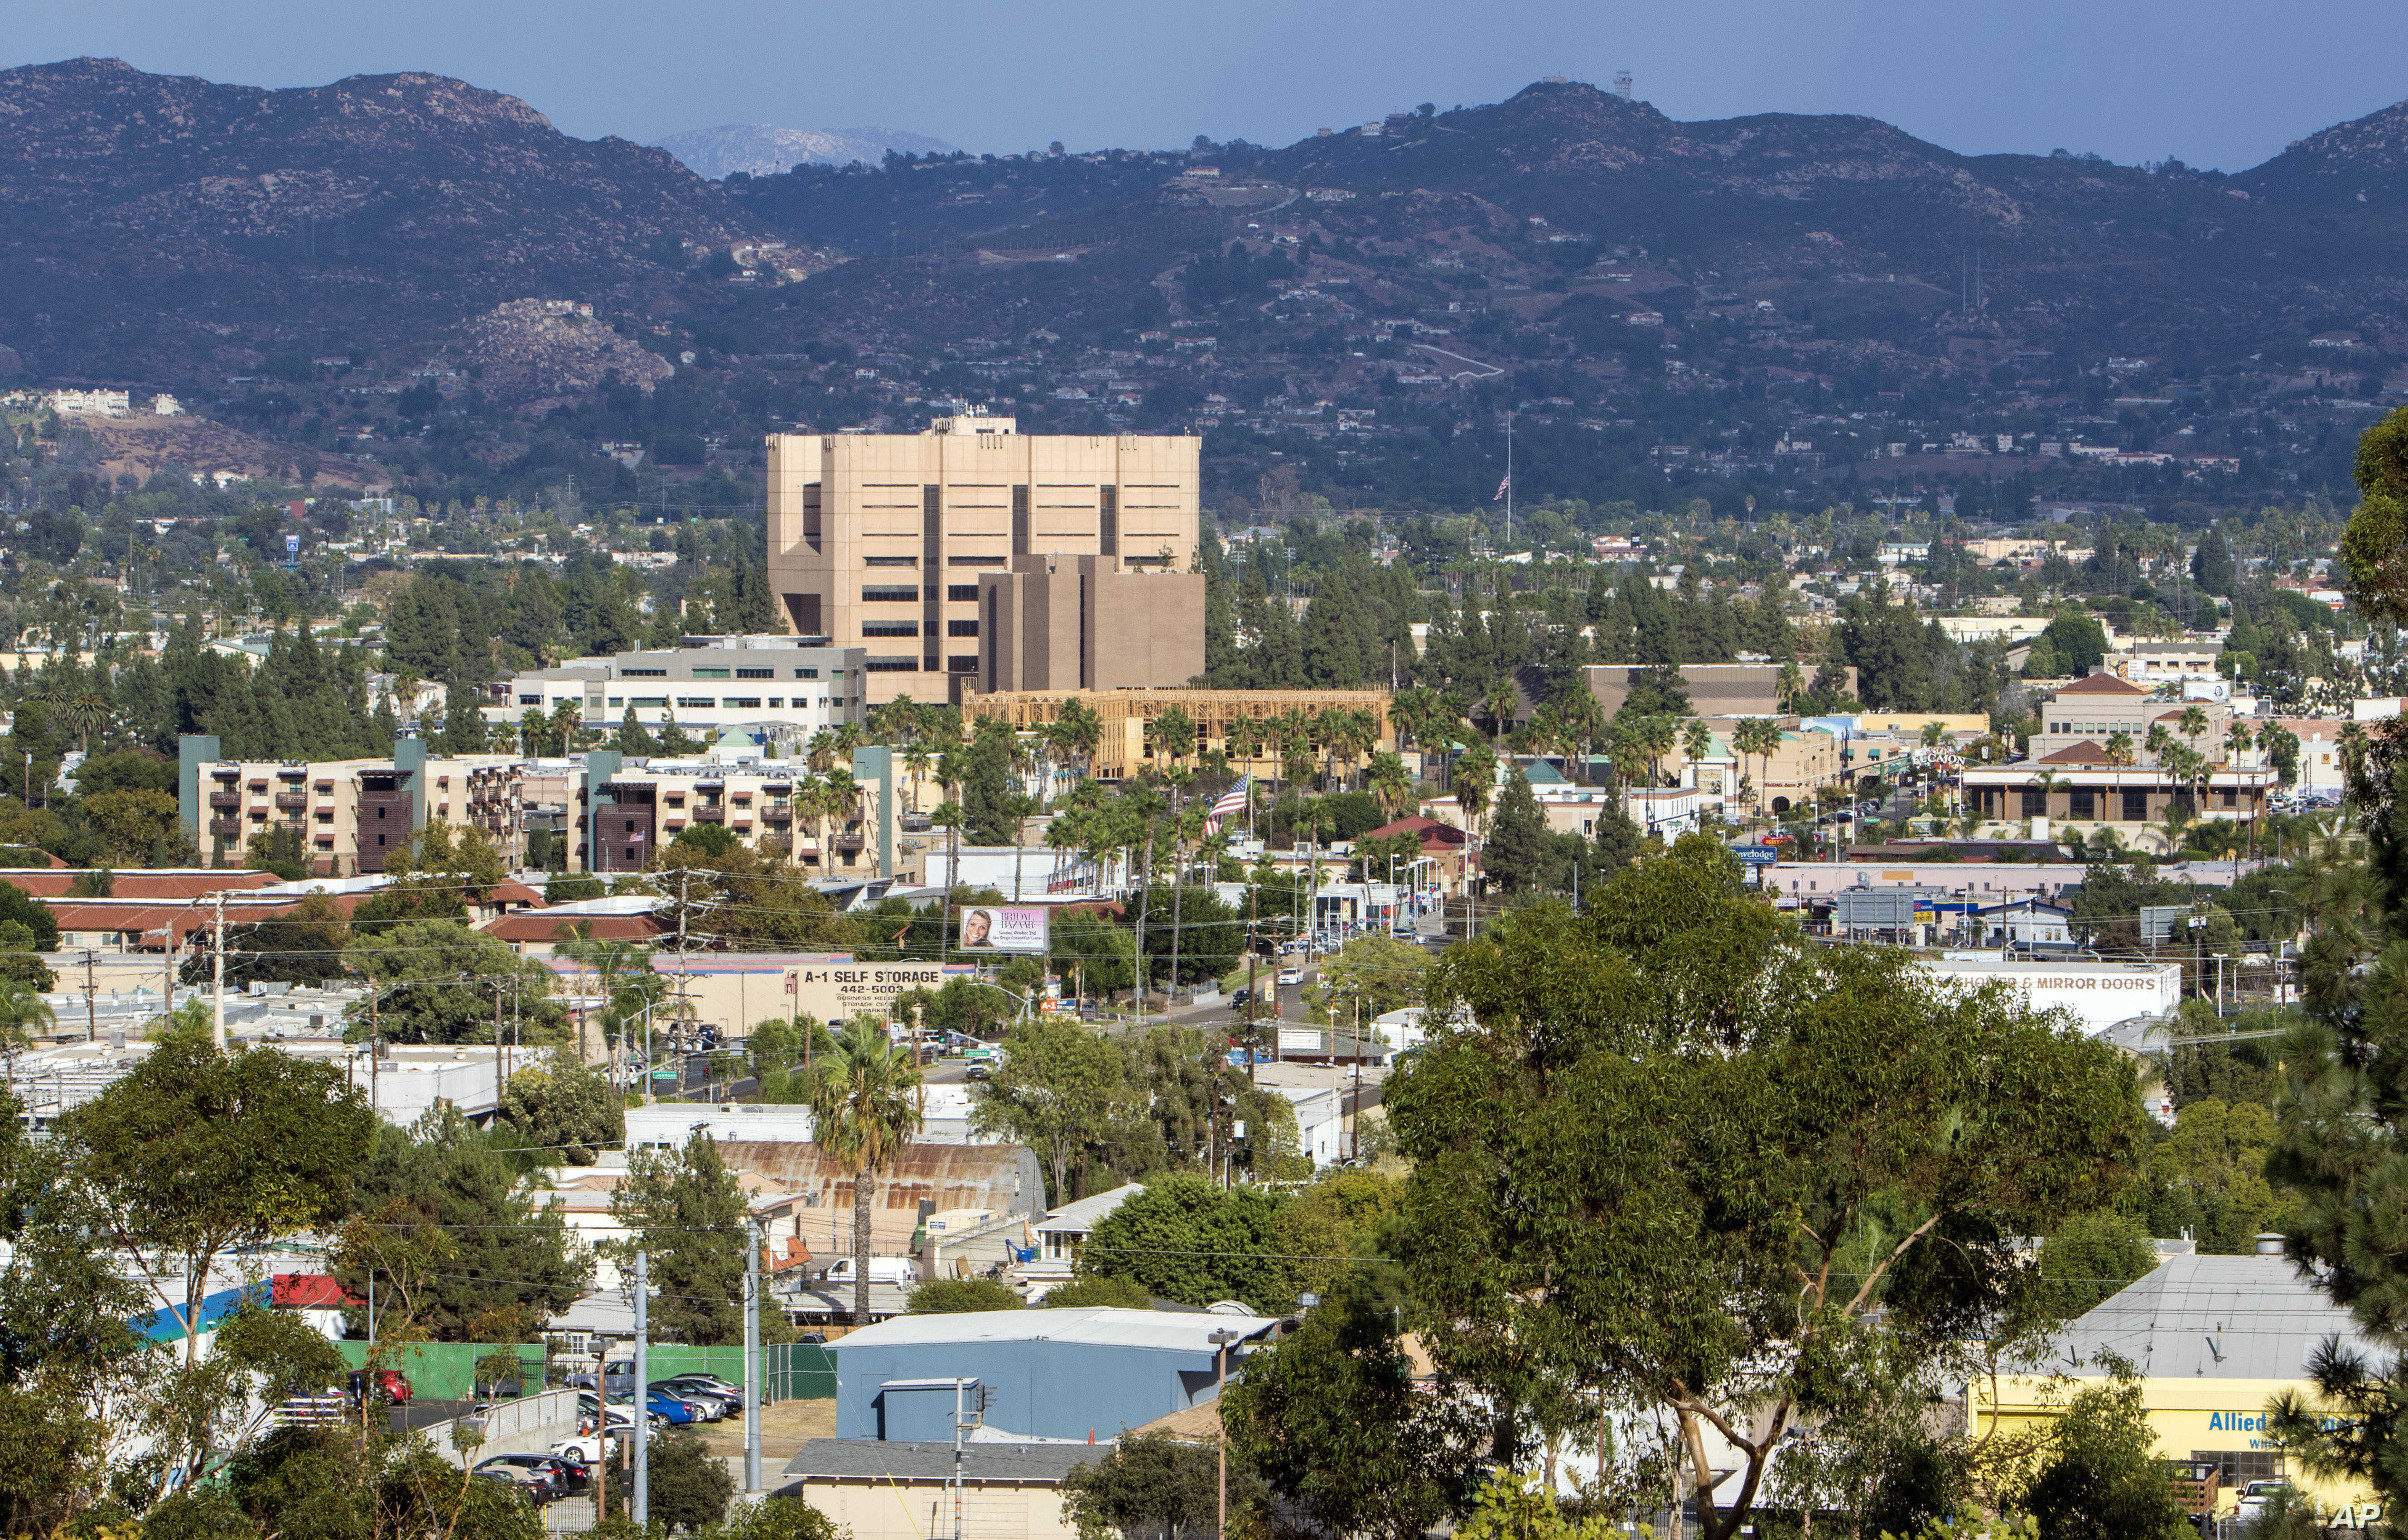 FILE - The city of El Cajon, Calif., a community east of San Diego, Sept. 29, 2016. On Sept. 27, 2016, an El Cajon police officer shot and killed Alfred Olango, a Ugandan refugee who lived in the city.